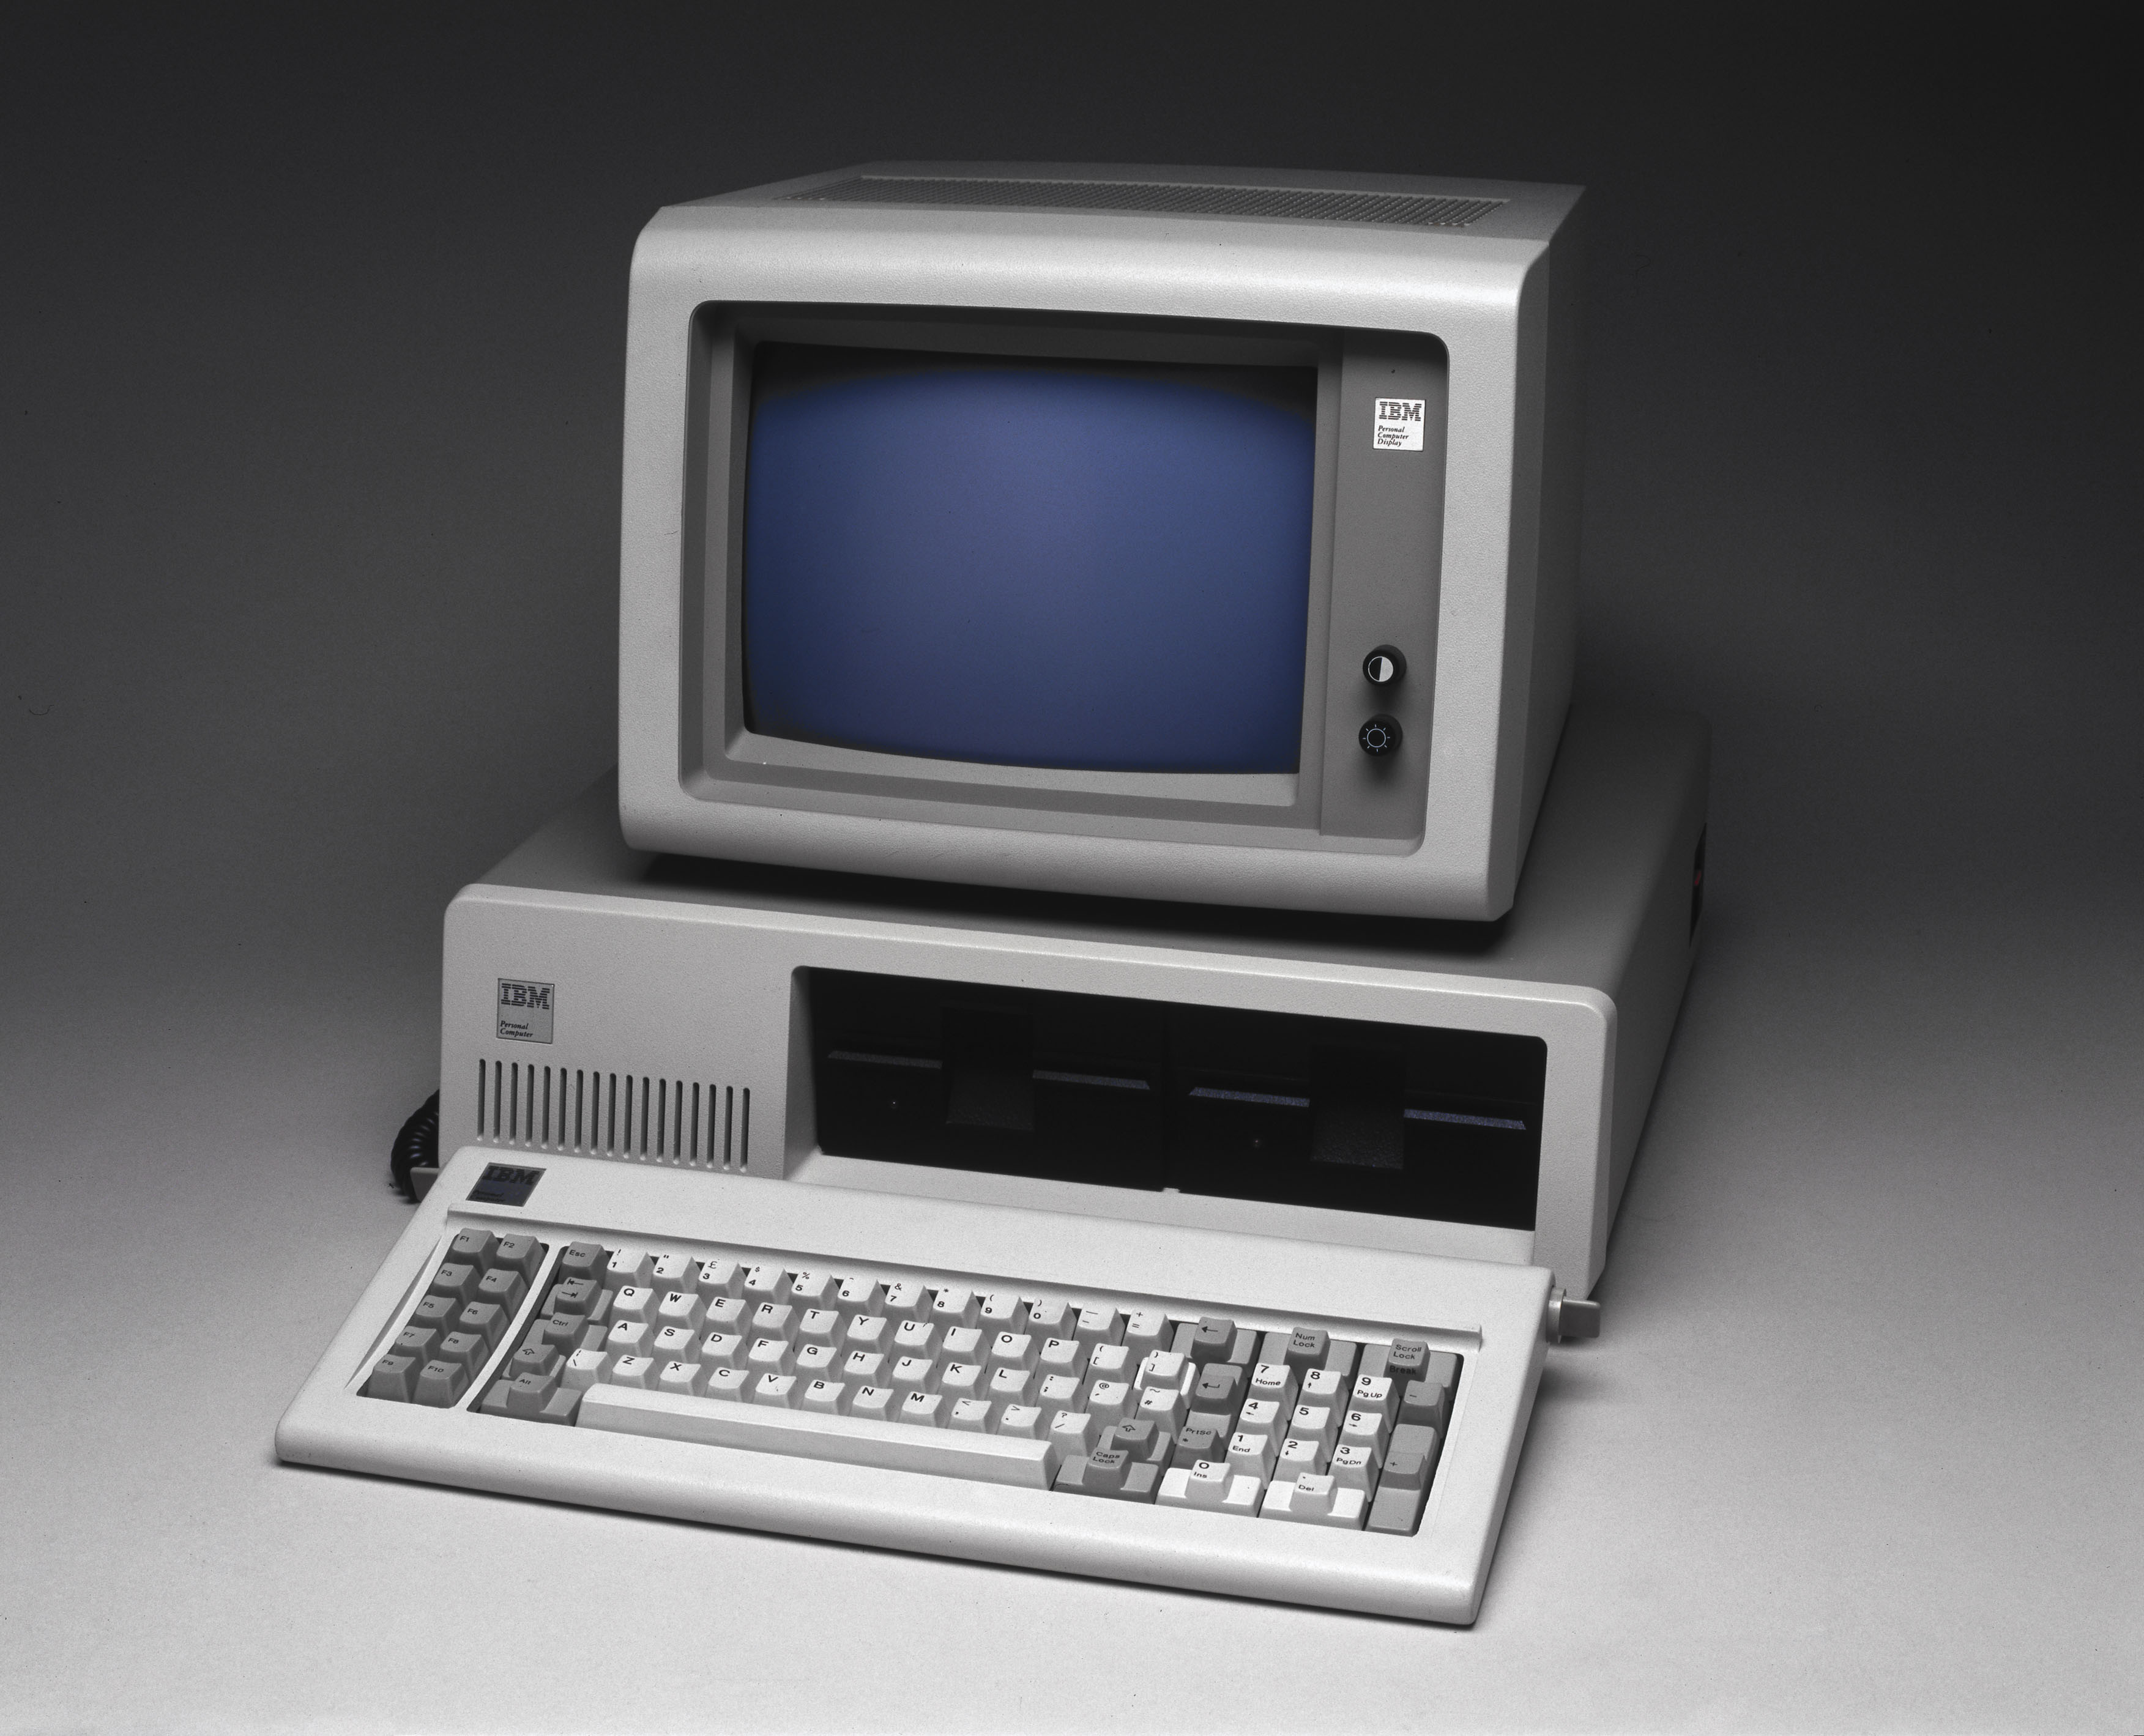 Bad Pc Setup The Ibm Pc Turns 35 Today